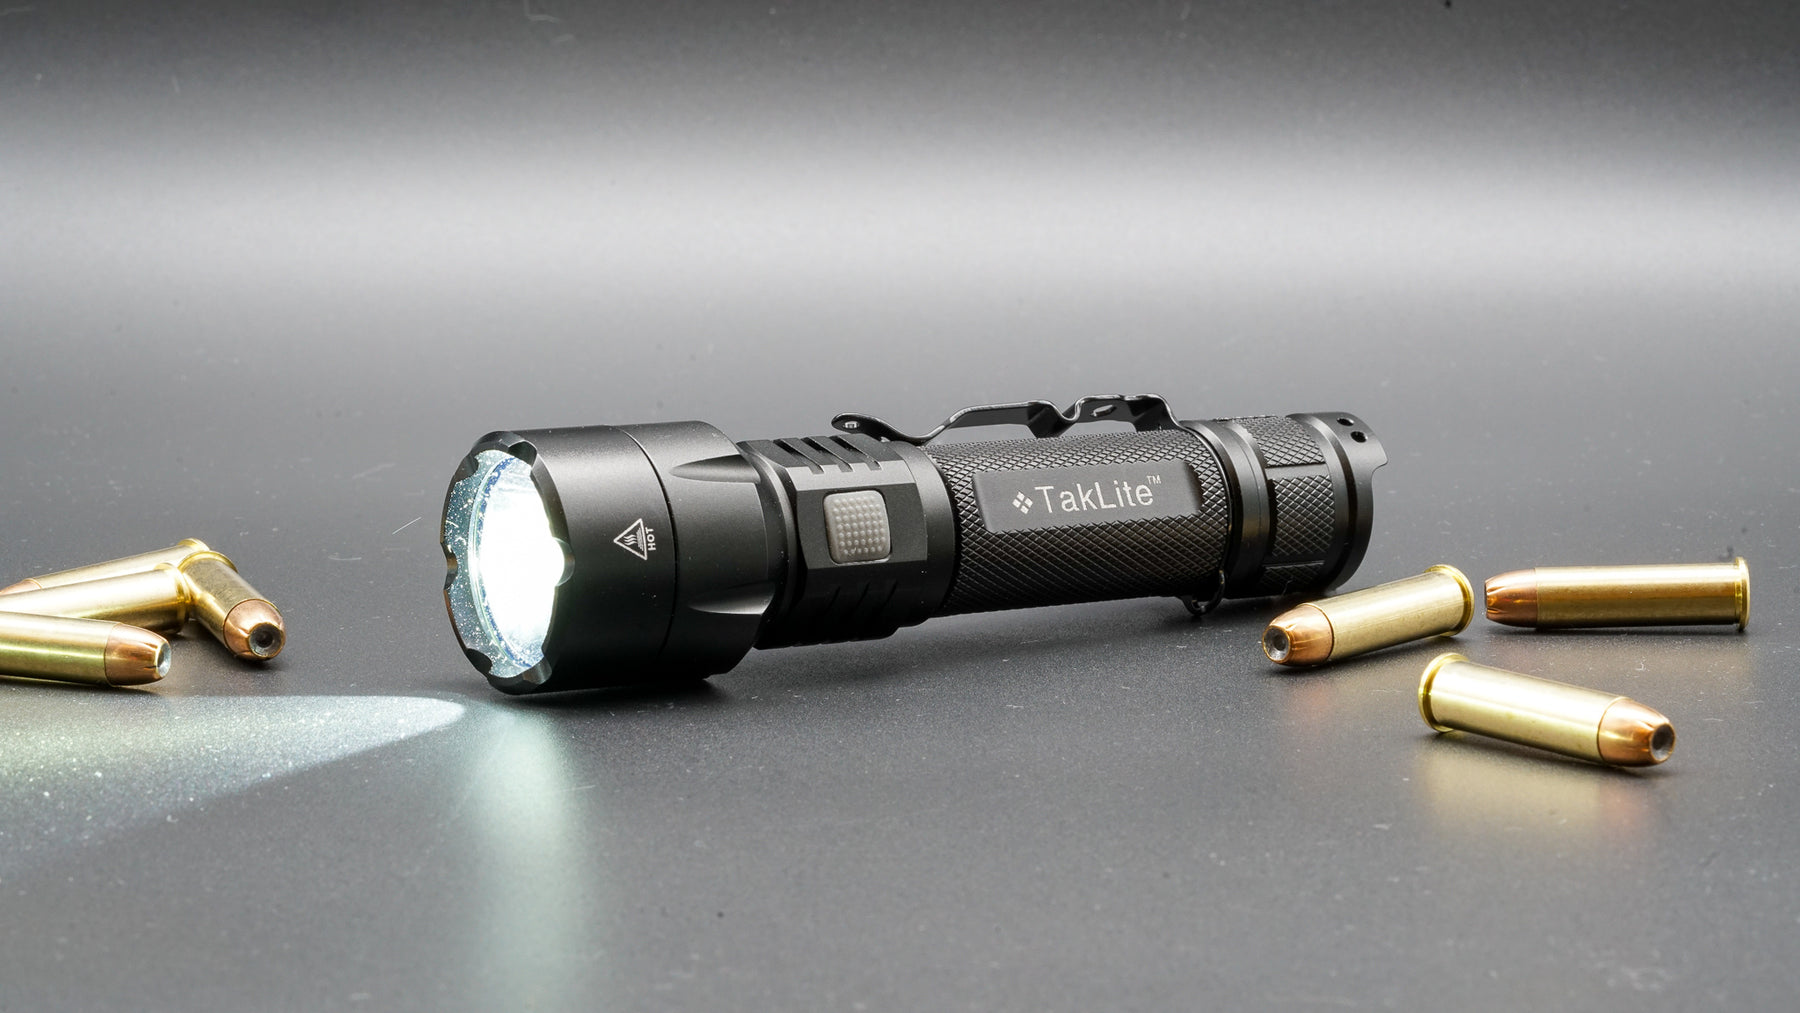 The TA-200 Flashlight Is Shaking Up The Industry